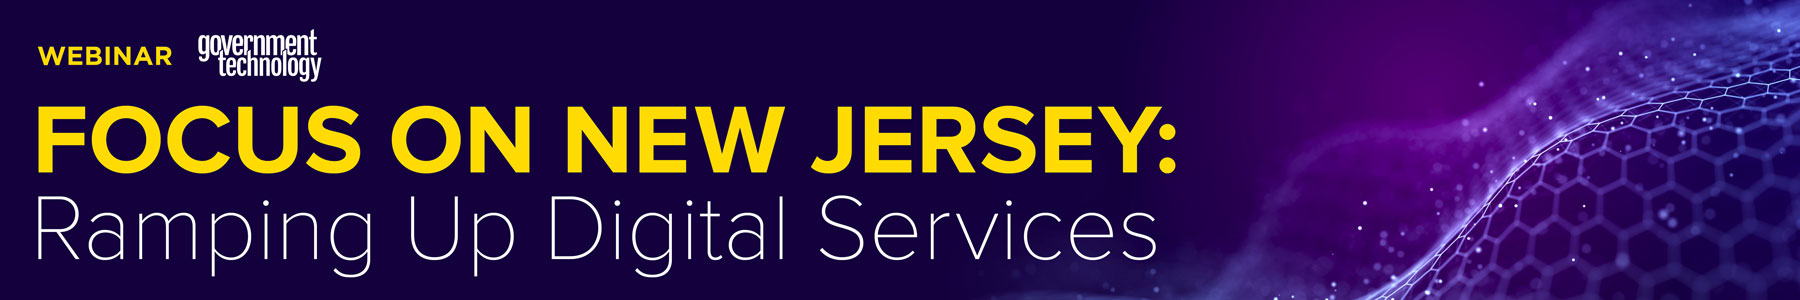 Focus on New Jersey: Ramping Up Digital Services